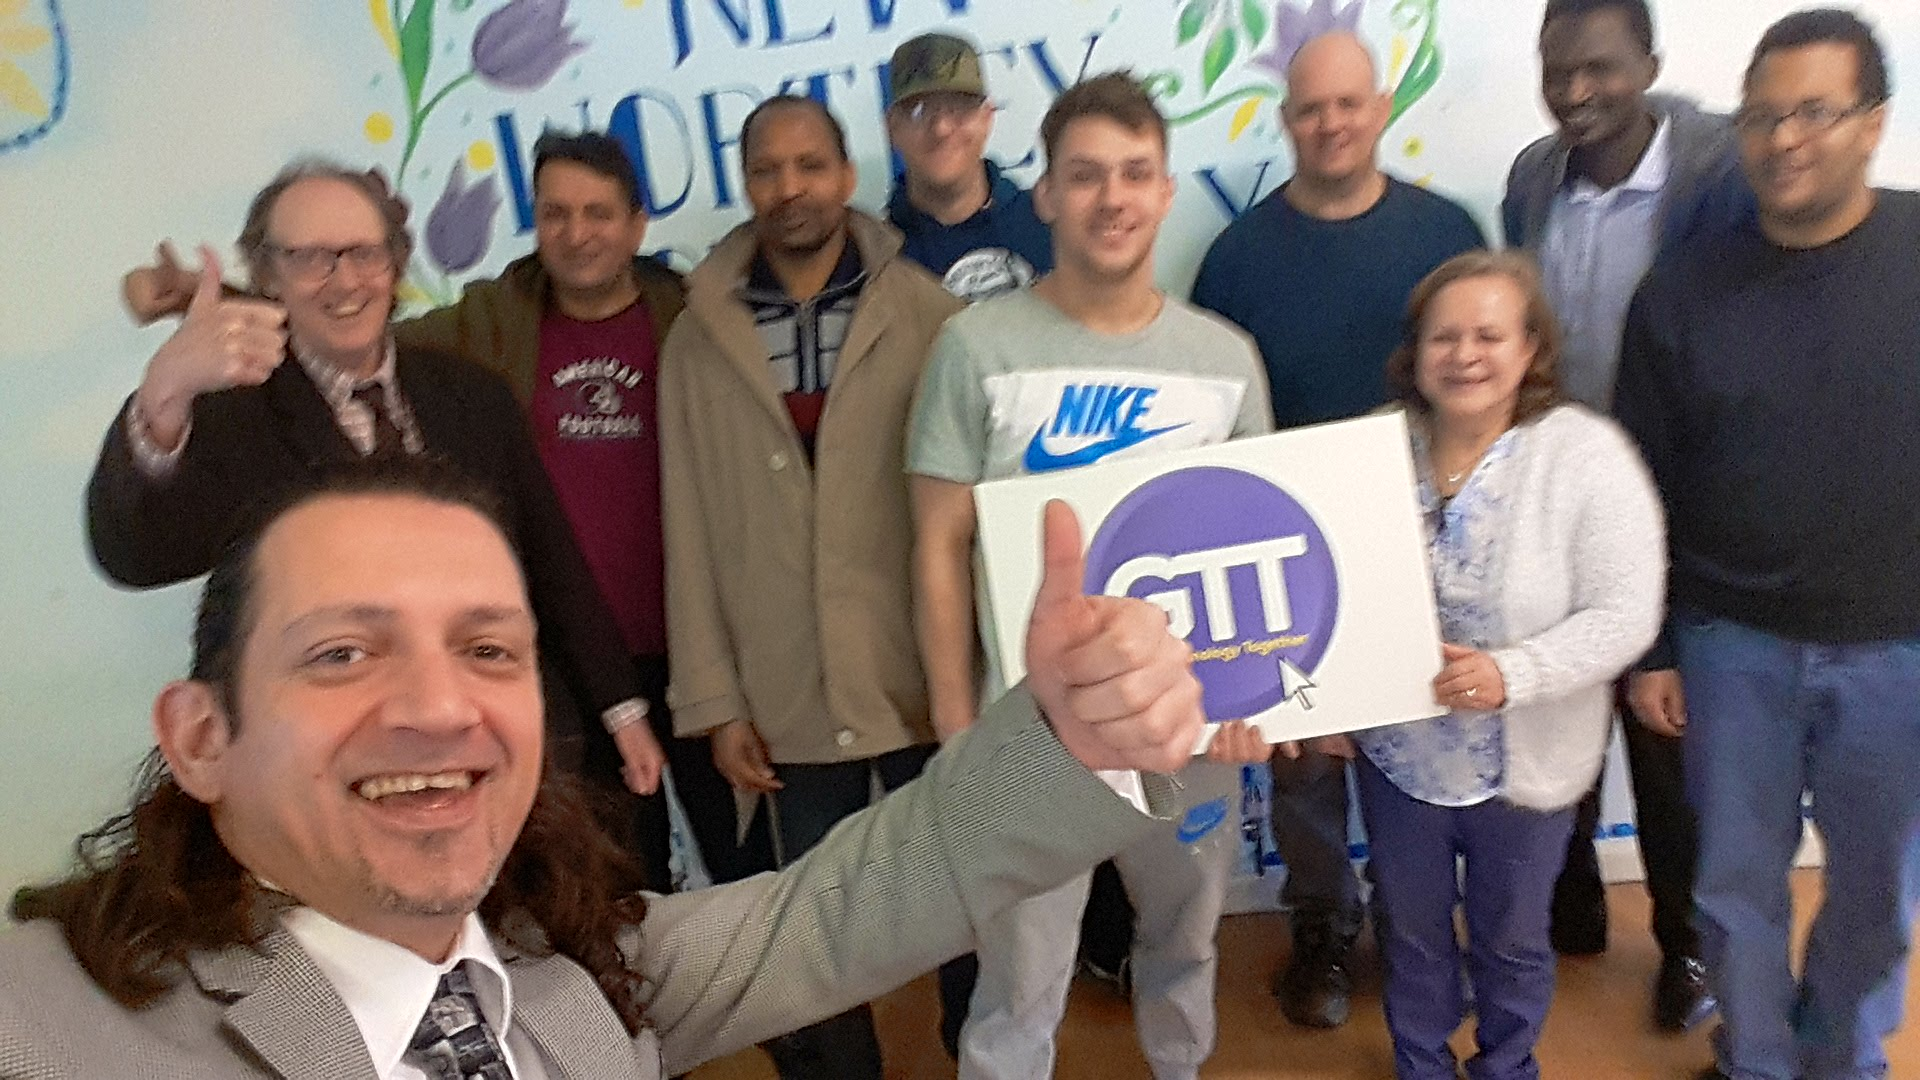 Another Very Successful Gtt Metal Bashers March Get Technology Together